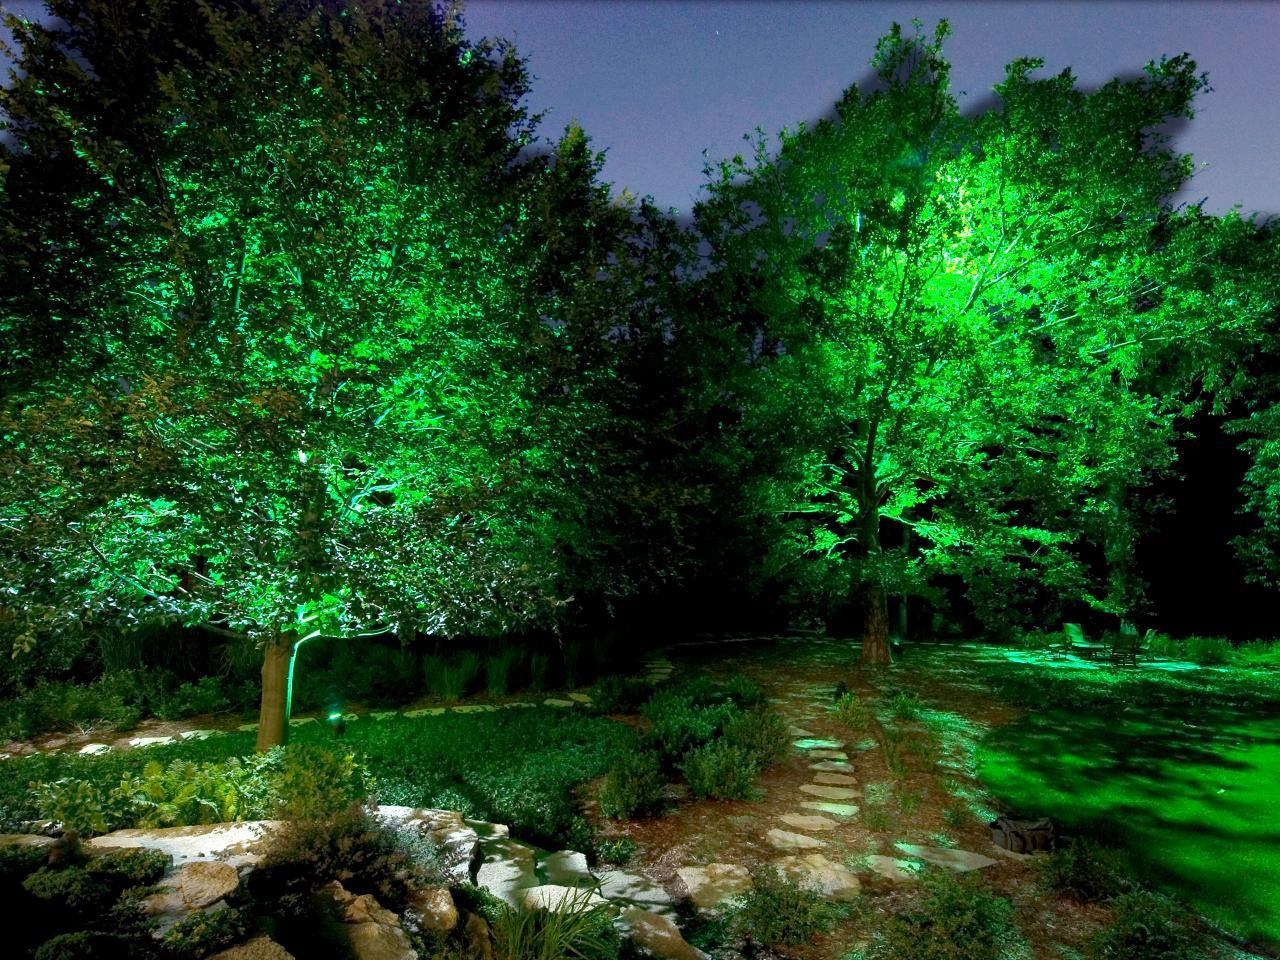 22 landscape lighting ideas electrical wiring ceiling fan and 22 landscape lighting ideas diy electrical wiring how tos light fixtures arubaitofo Image collections